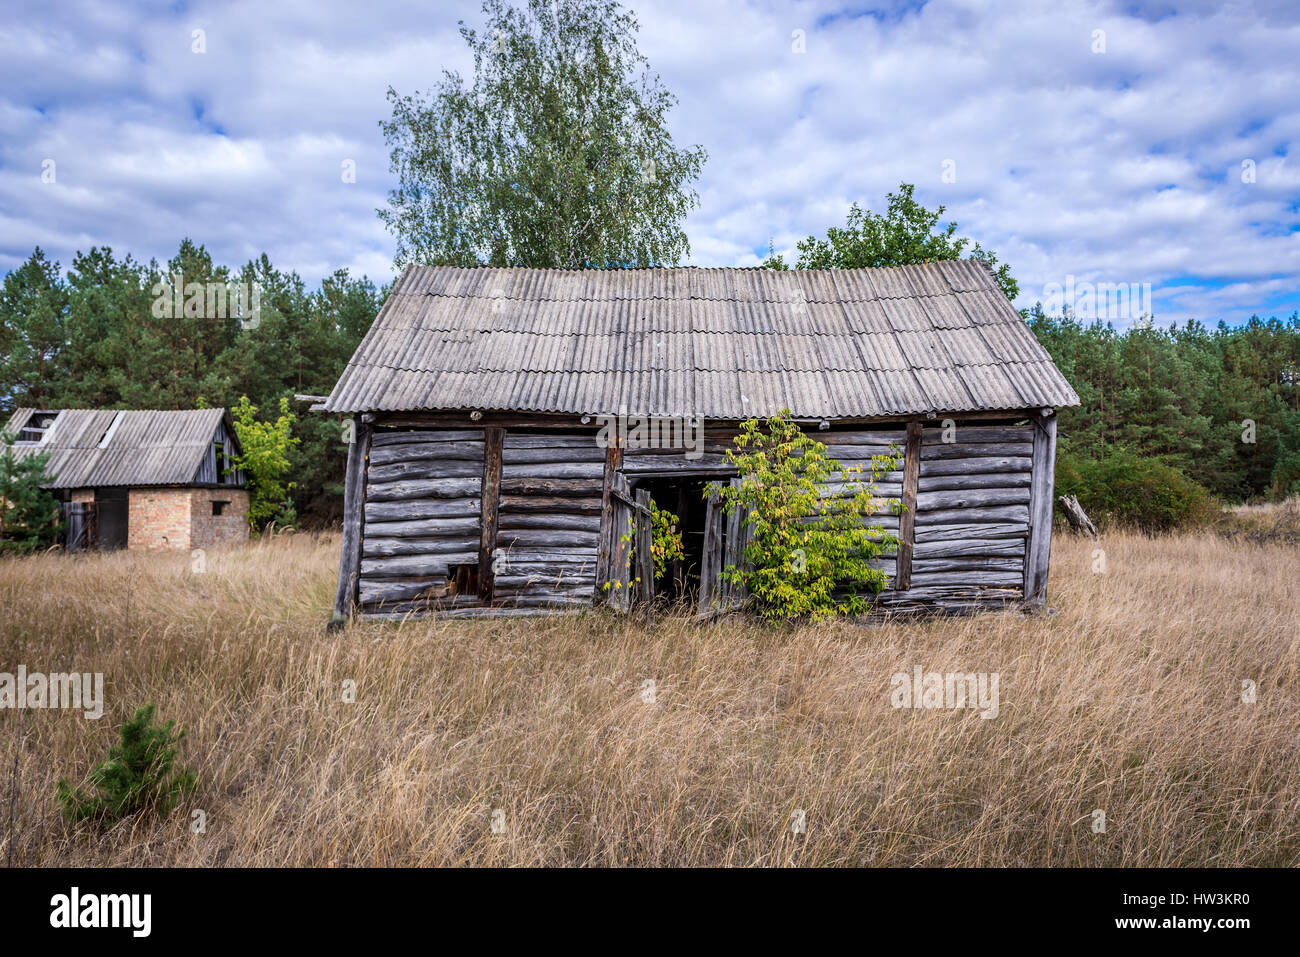 Old wooden barn in Mashevo abandoned village of Chernobyl Nuclear Power Plant Zone of Alienation area around nuclear - Stock Image